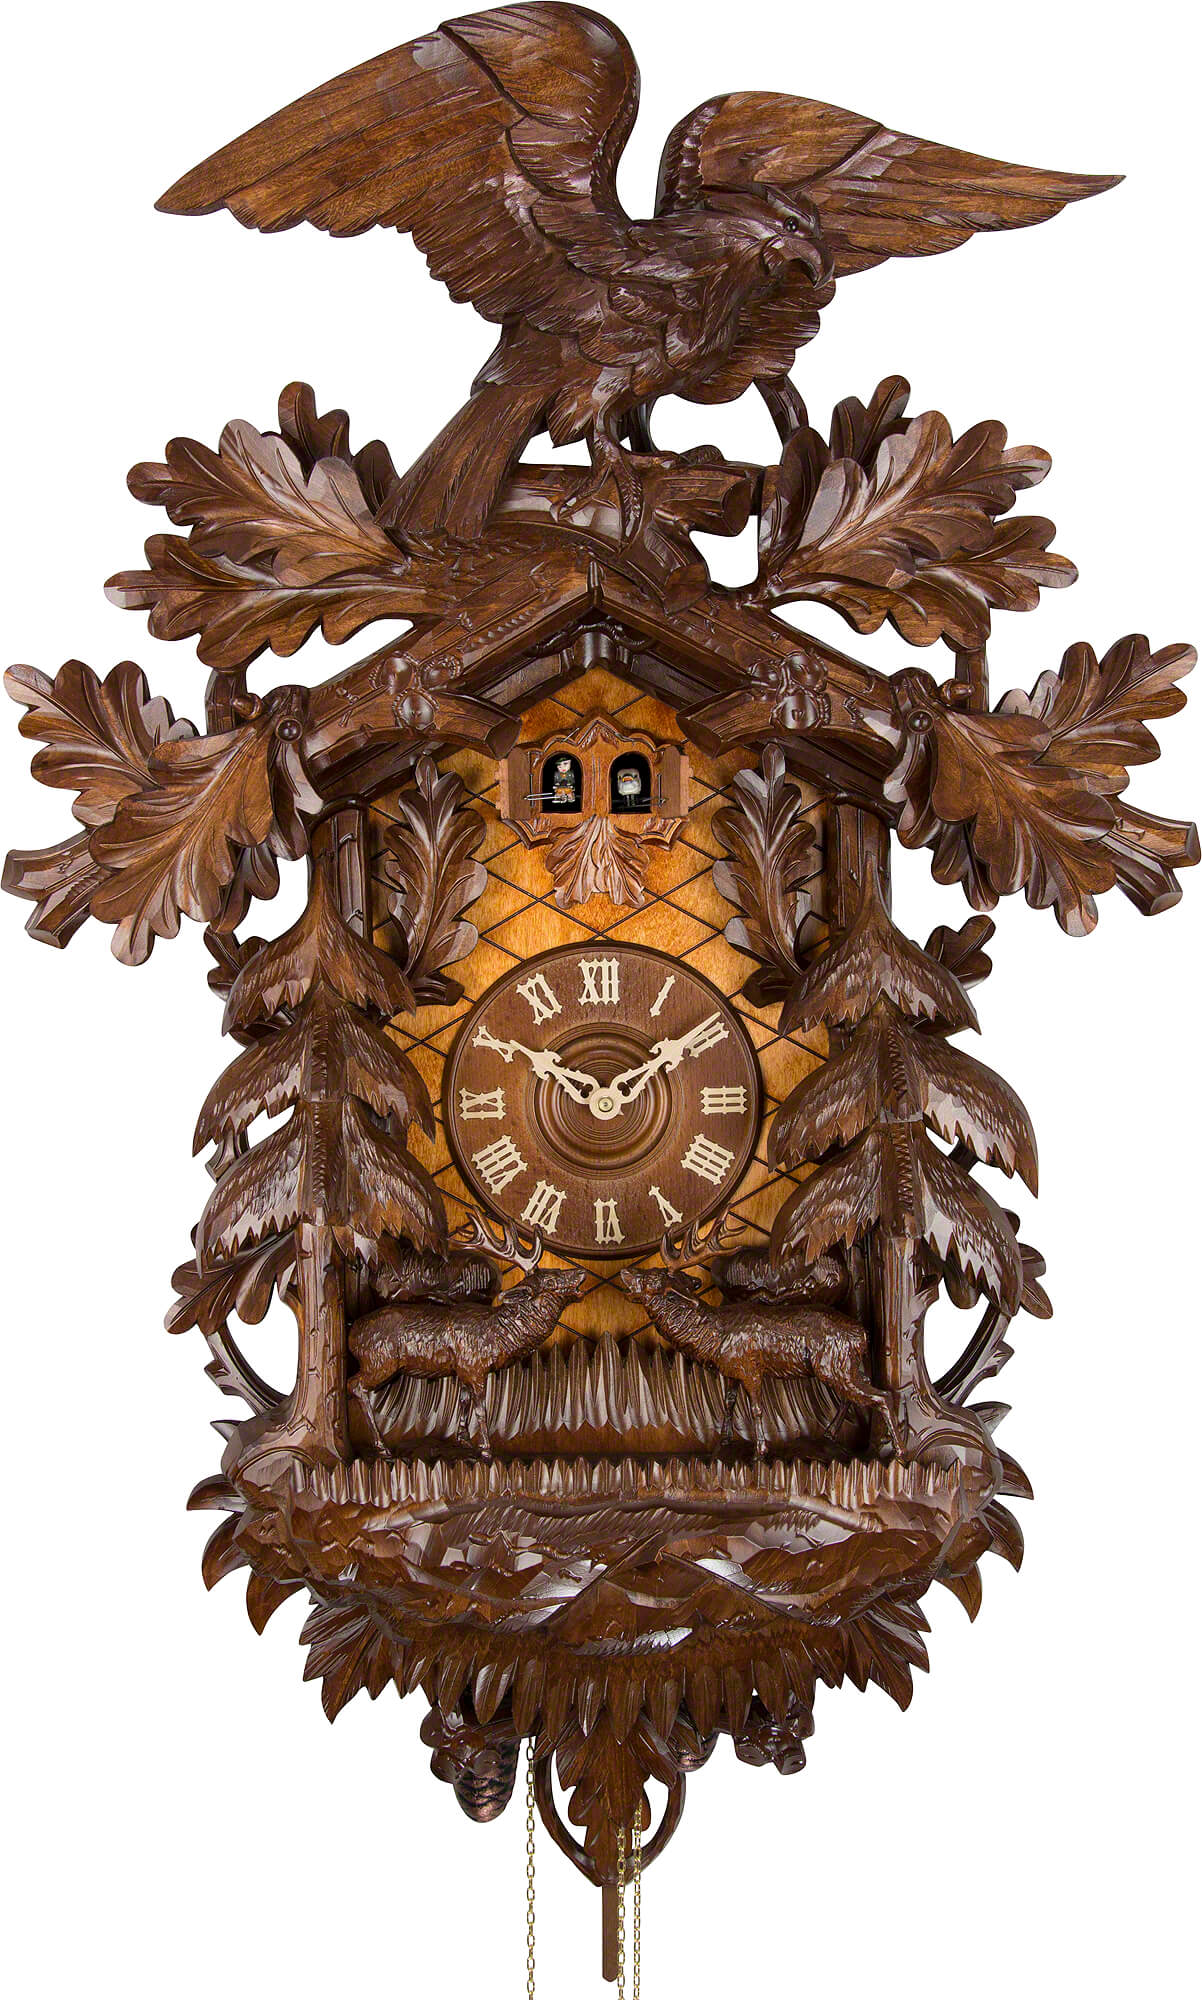 Cuckoo Clock 8 Day Movement Carved Style 90cm By Rombach